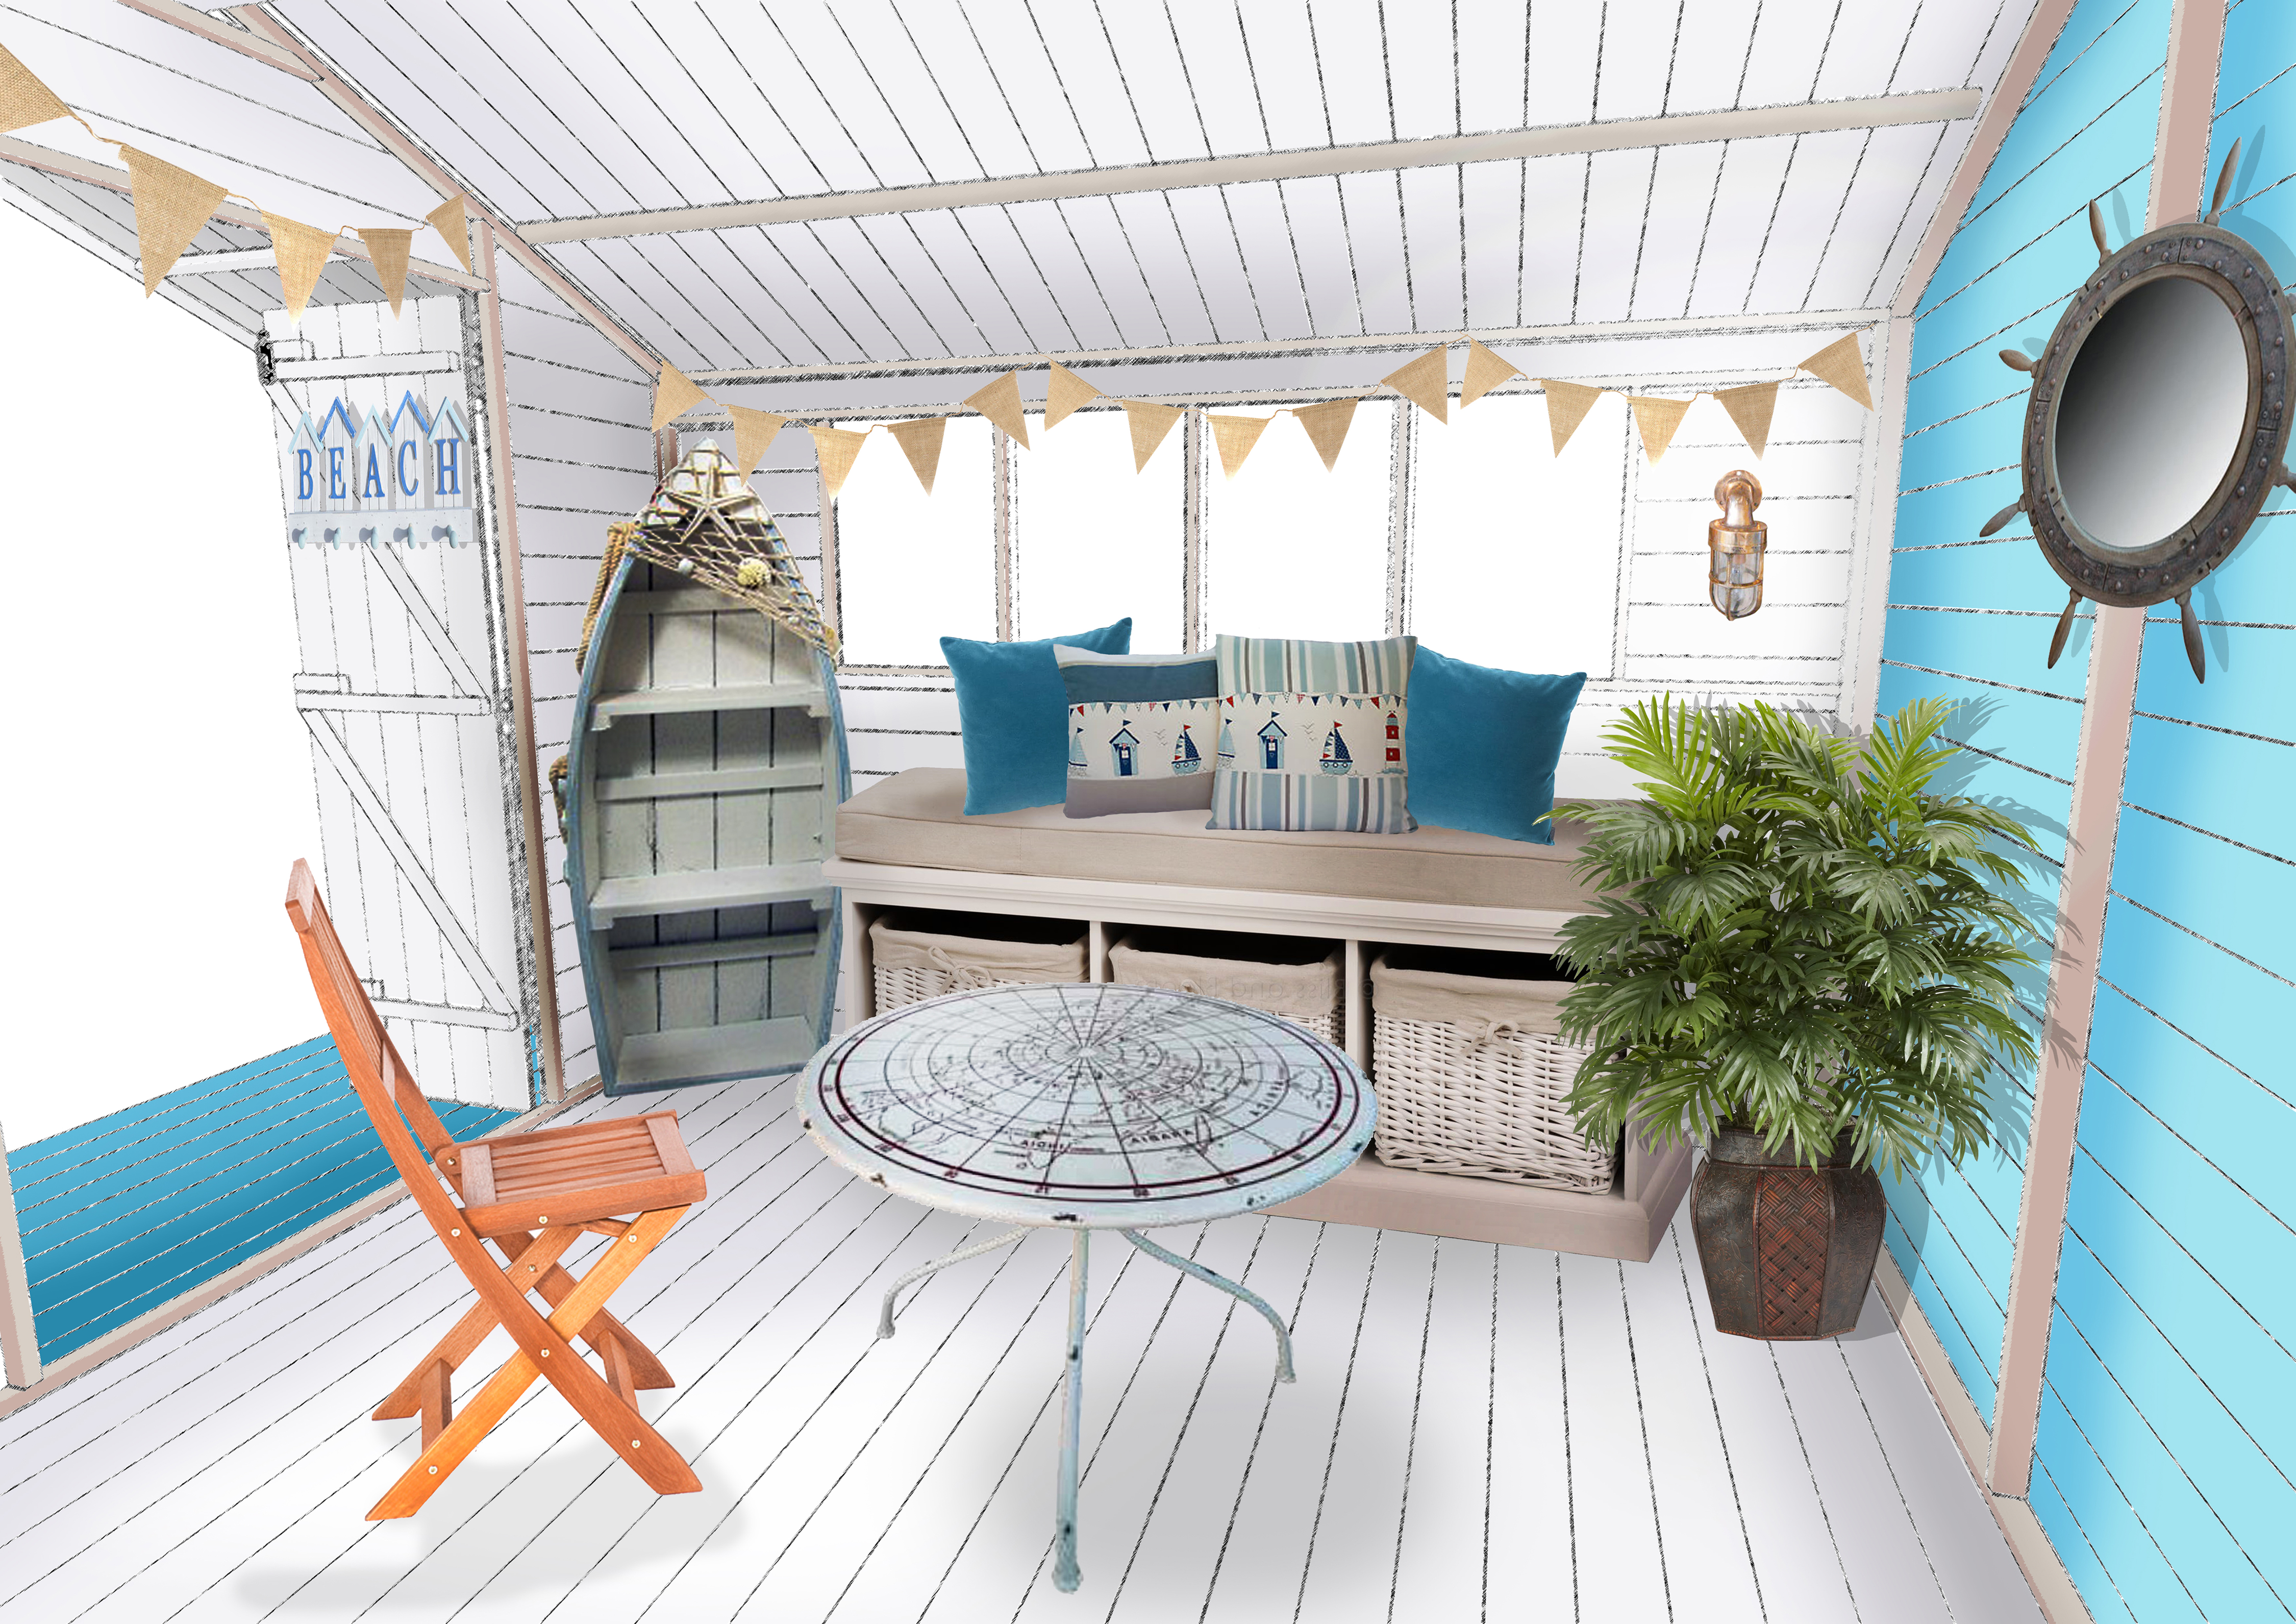 Inspired interiors 2 beach hut for Beach hut interior ideas